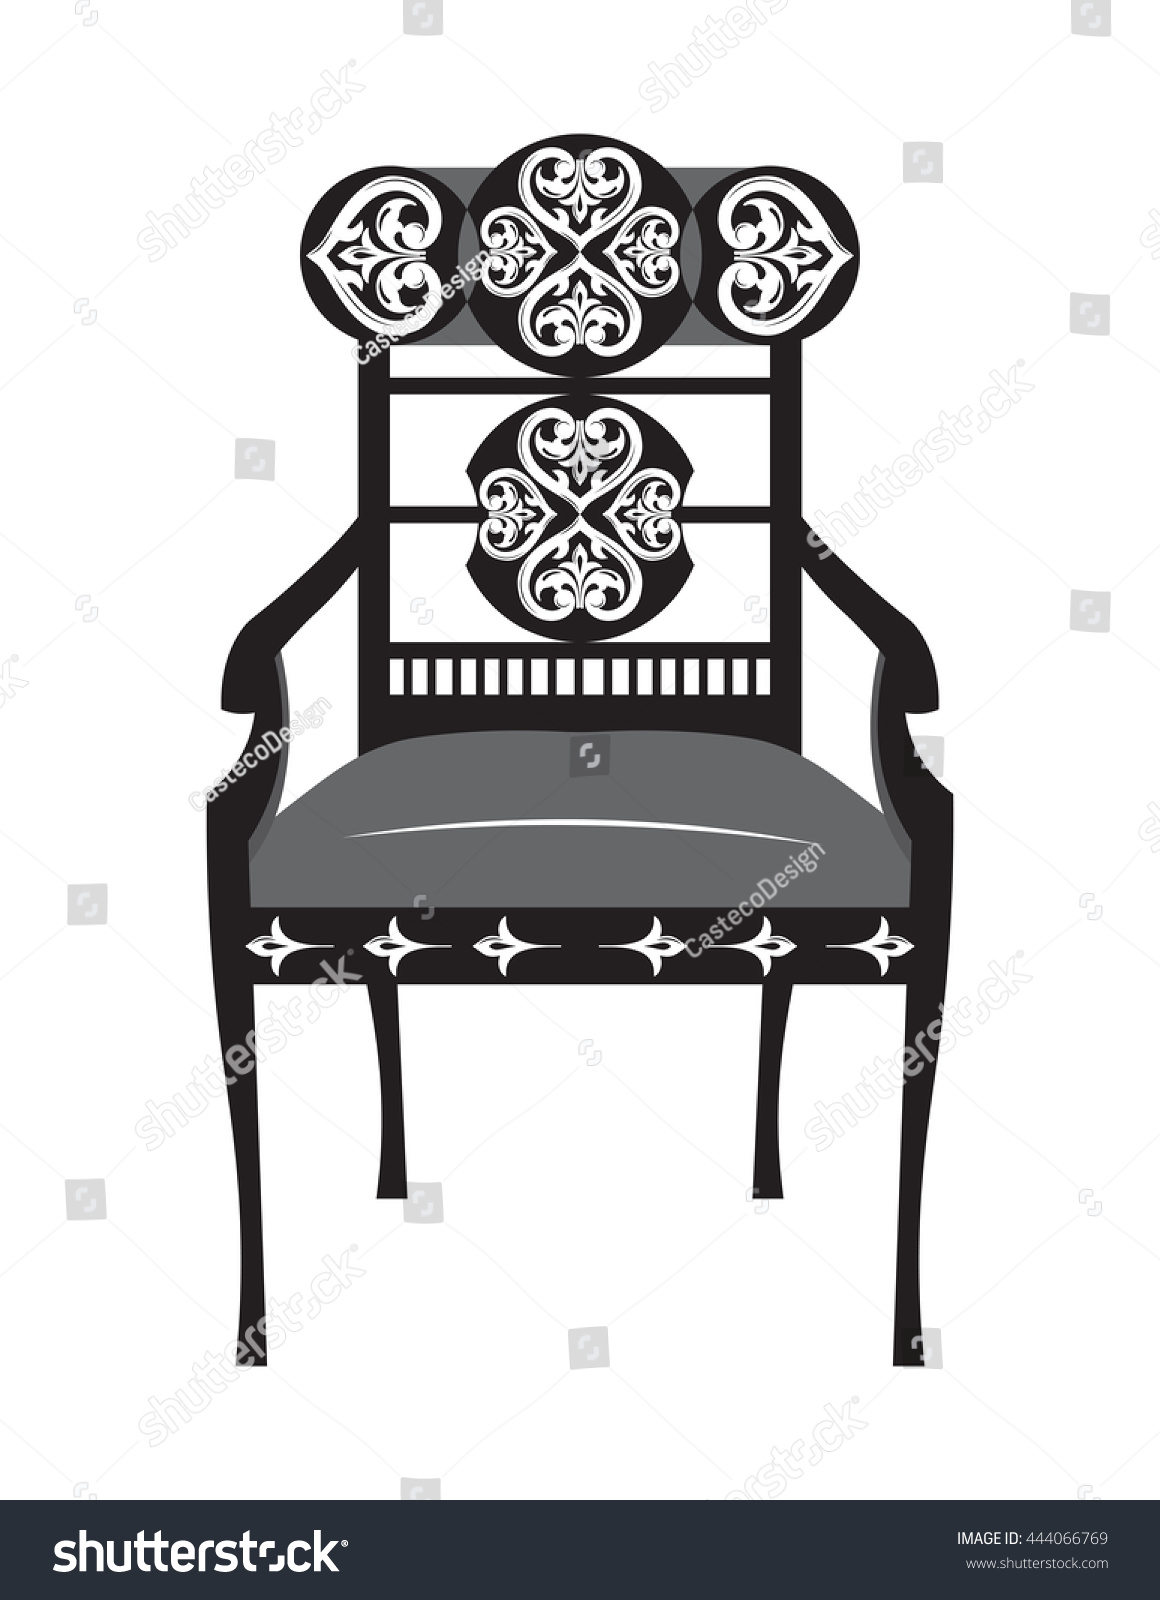 Classic Biedermeier Style Furniture. Chair Throne With Rich Ornaments.  English Carved Ornaments Furniture.